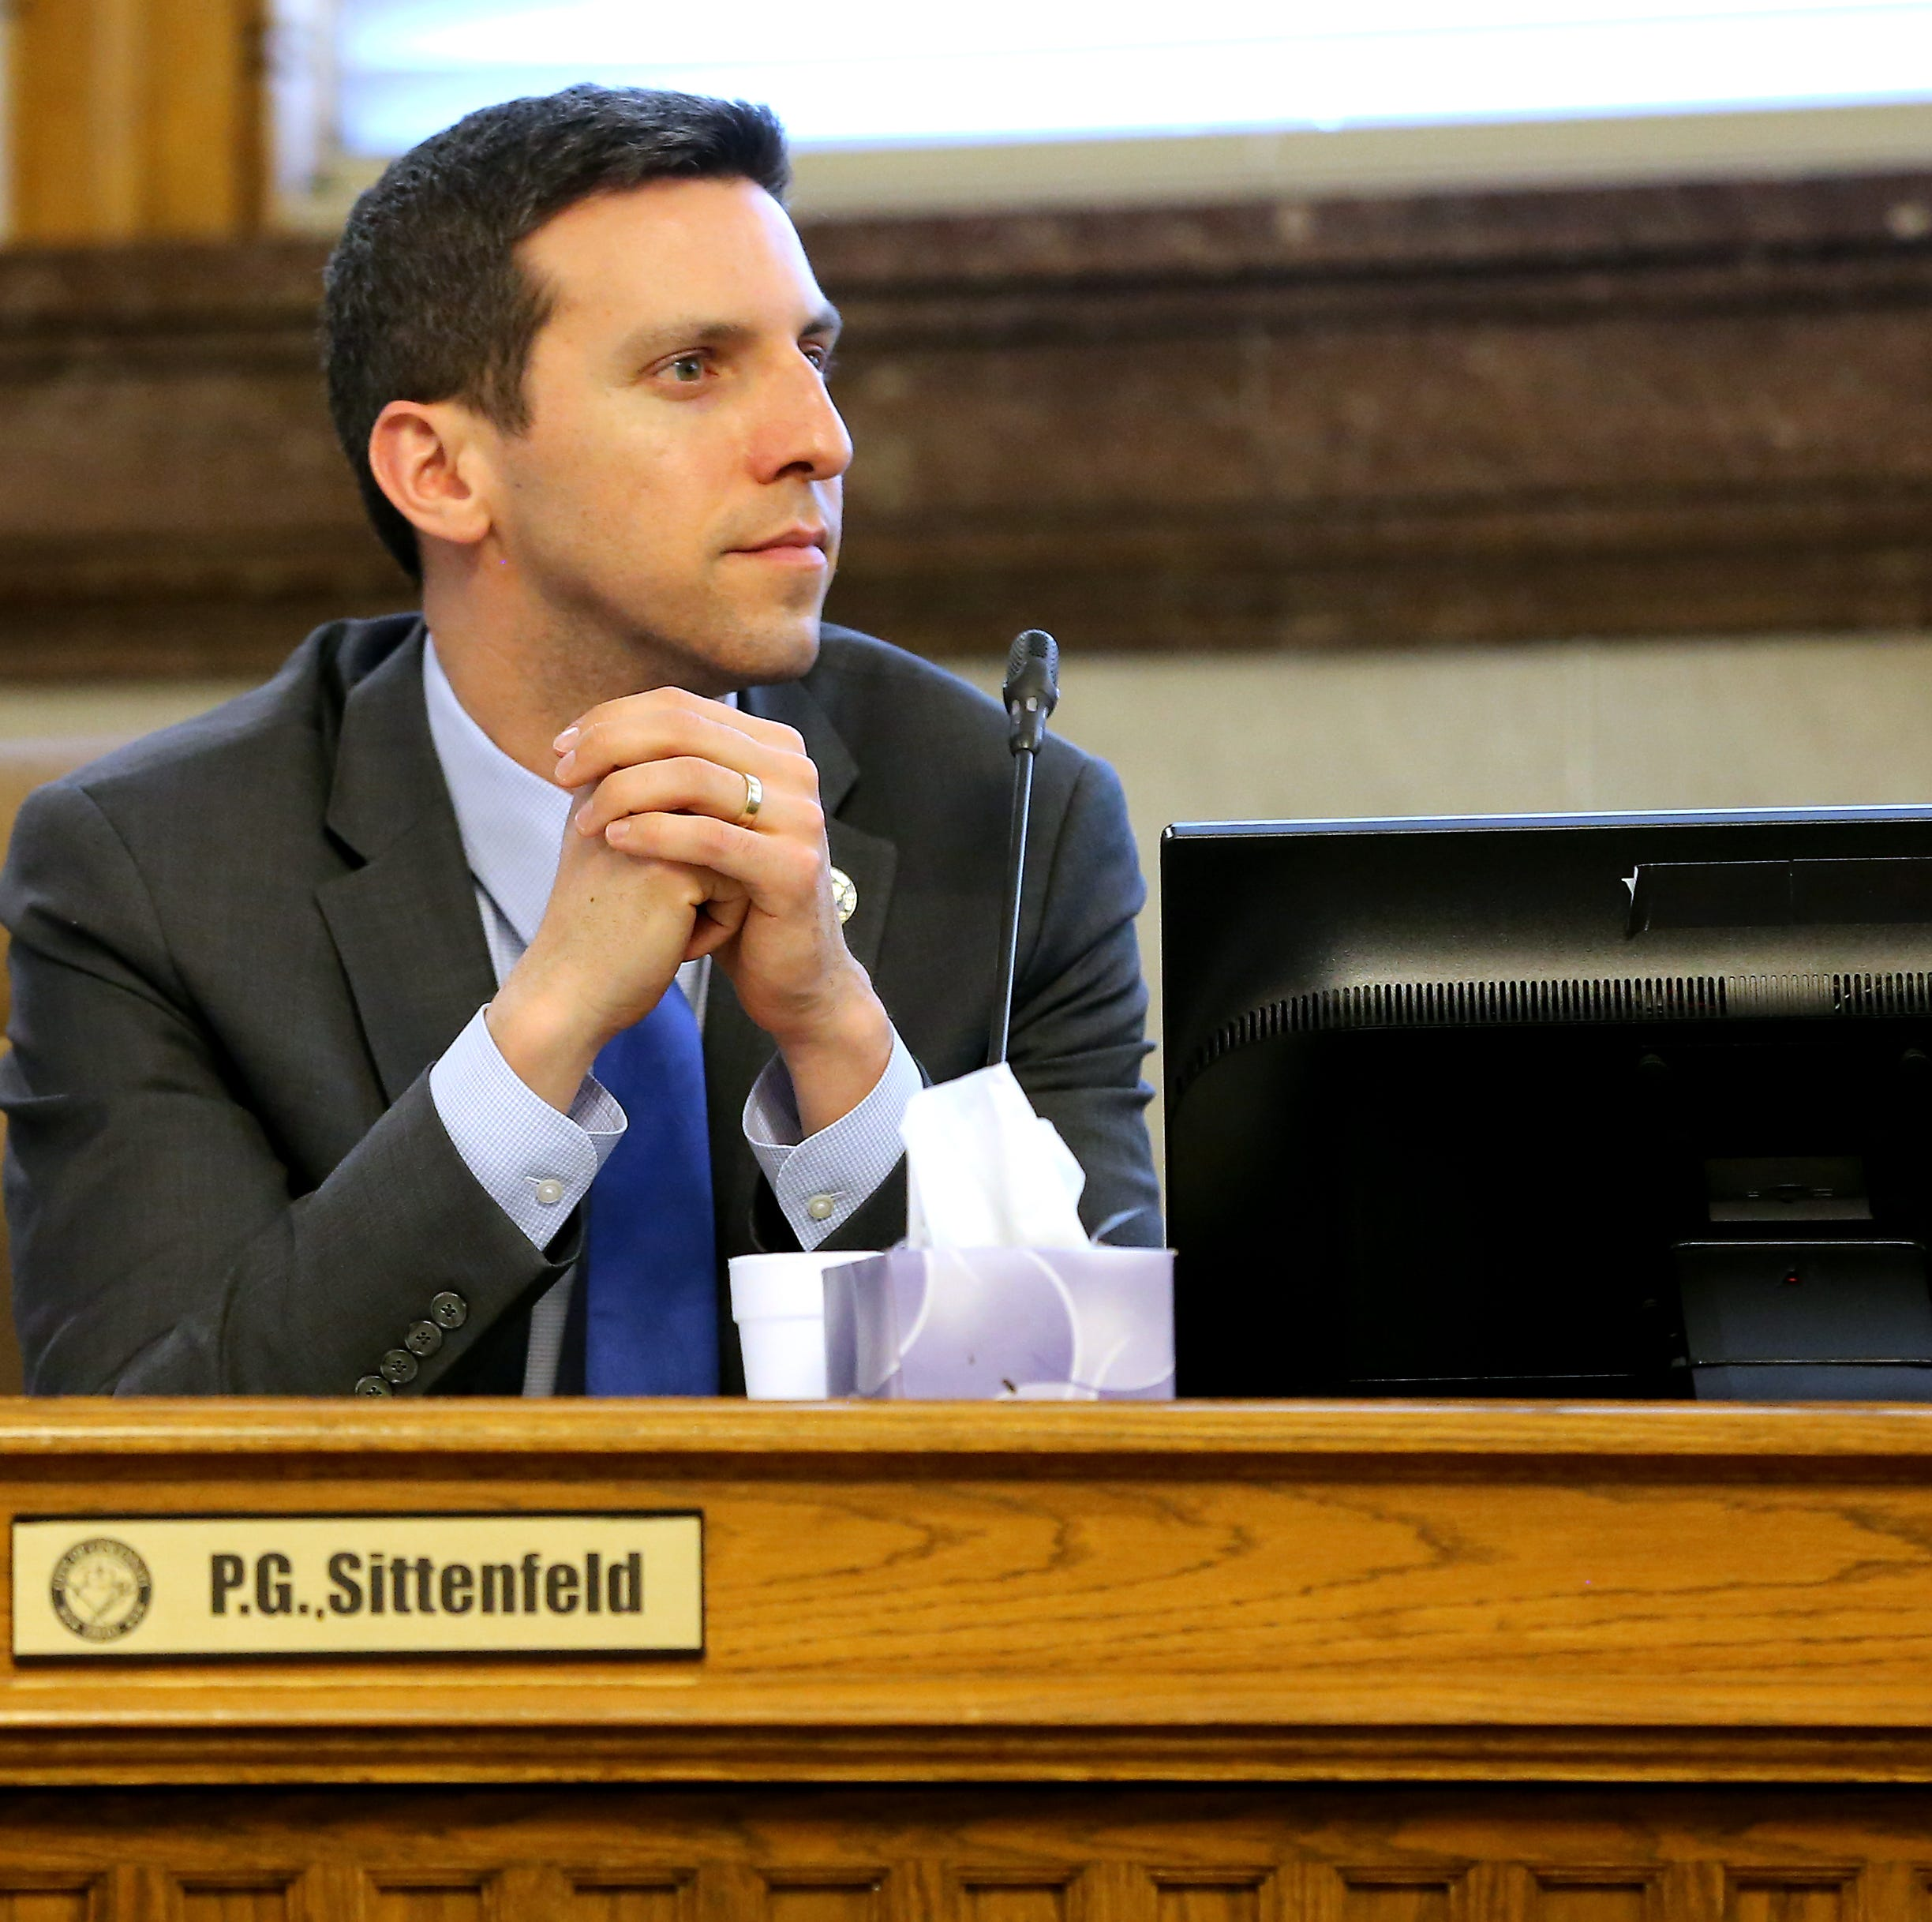 PX column: P.G. Sittenfeld is trying to be everything-to-everyone on the FC Cincinnati stadium issue. It's not helping